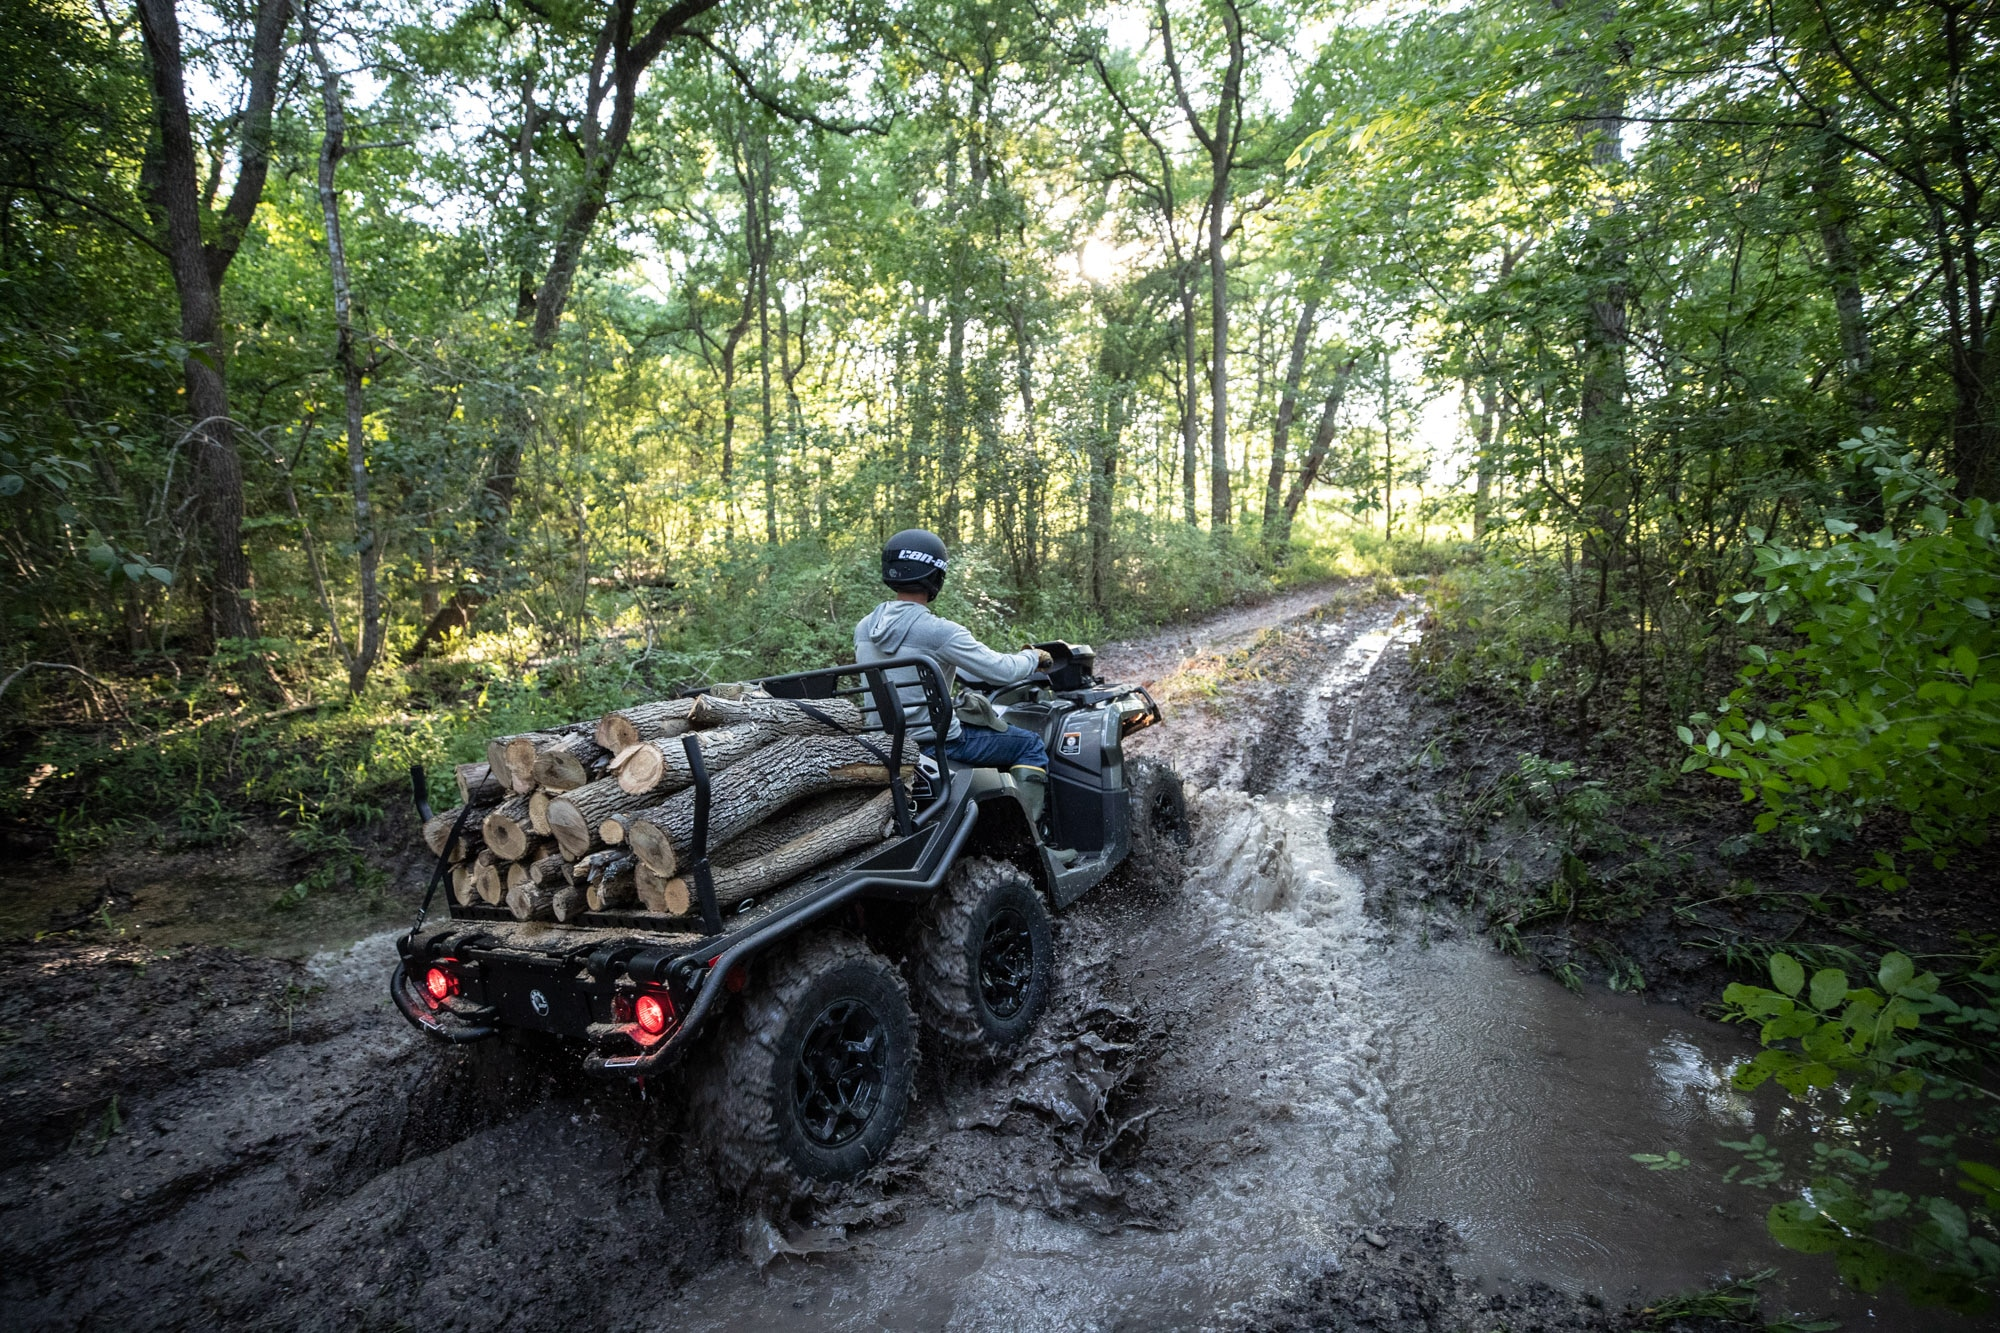 Man riding a Can-Am Outlander 6x6 ATV in the mud with wood in the rear rack